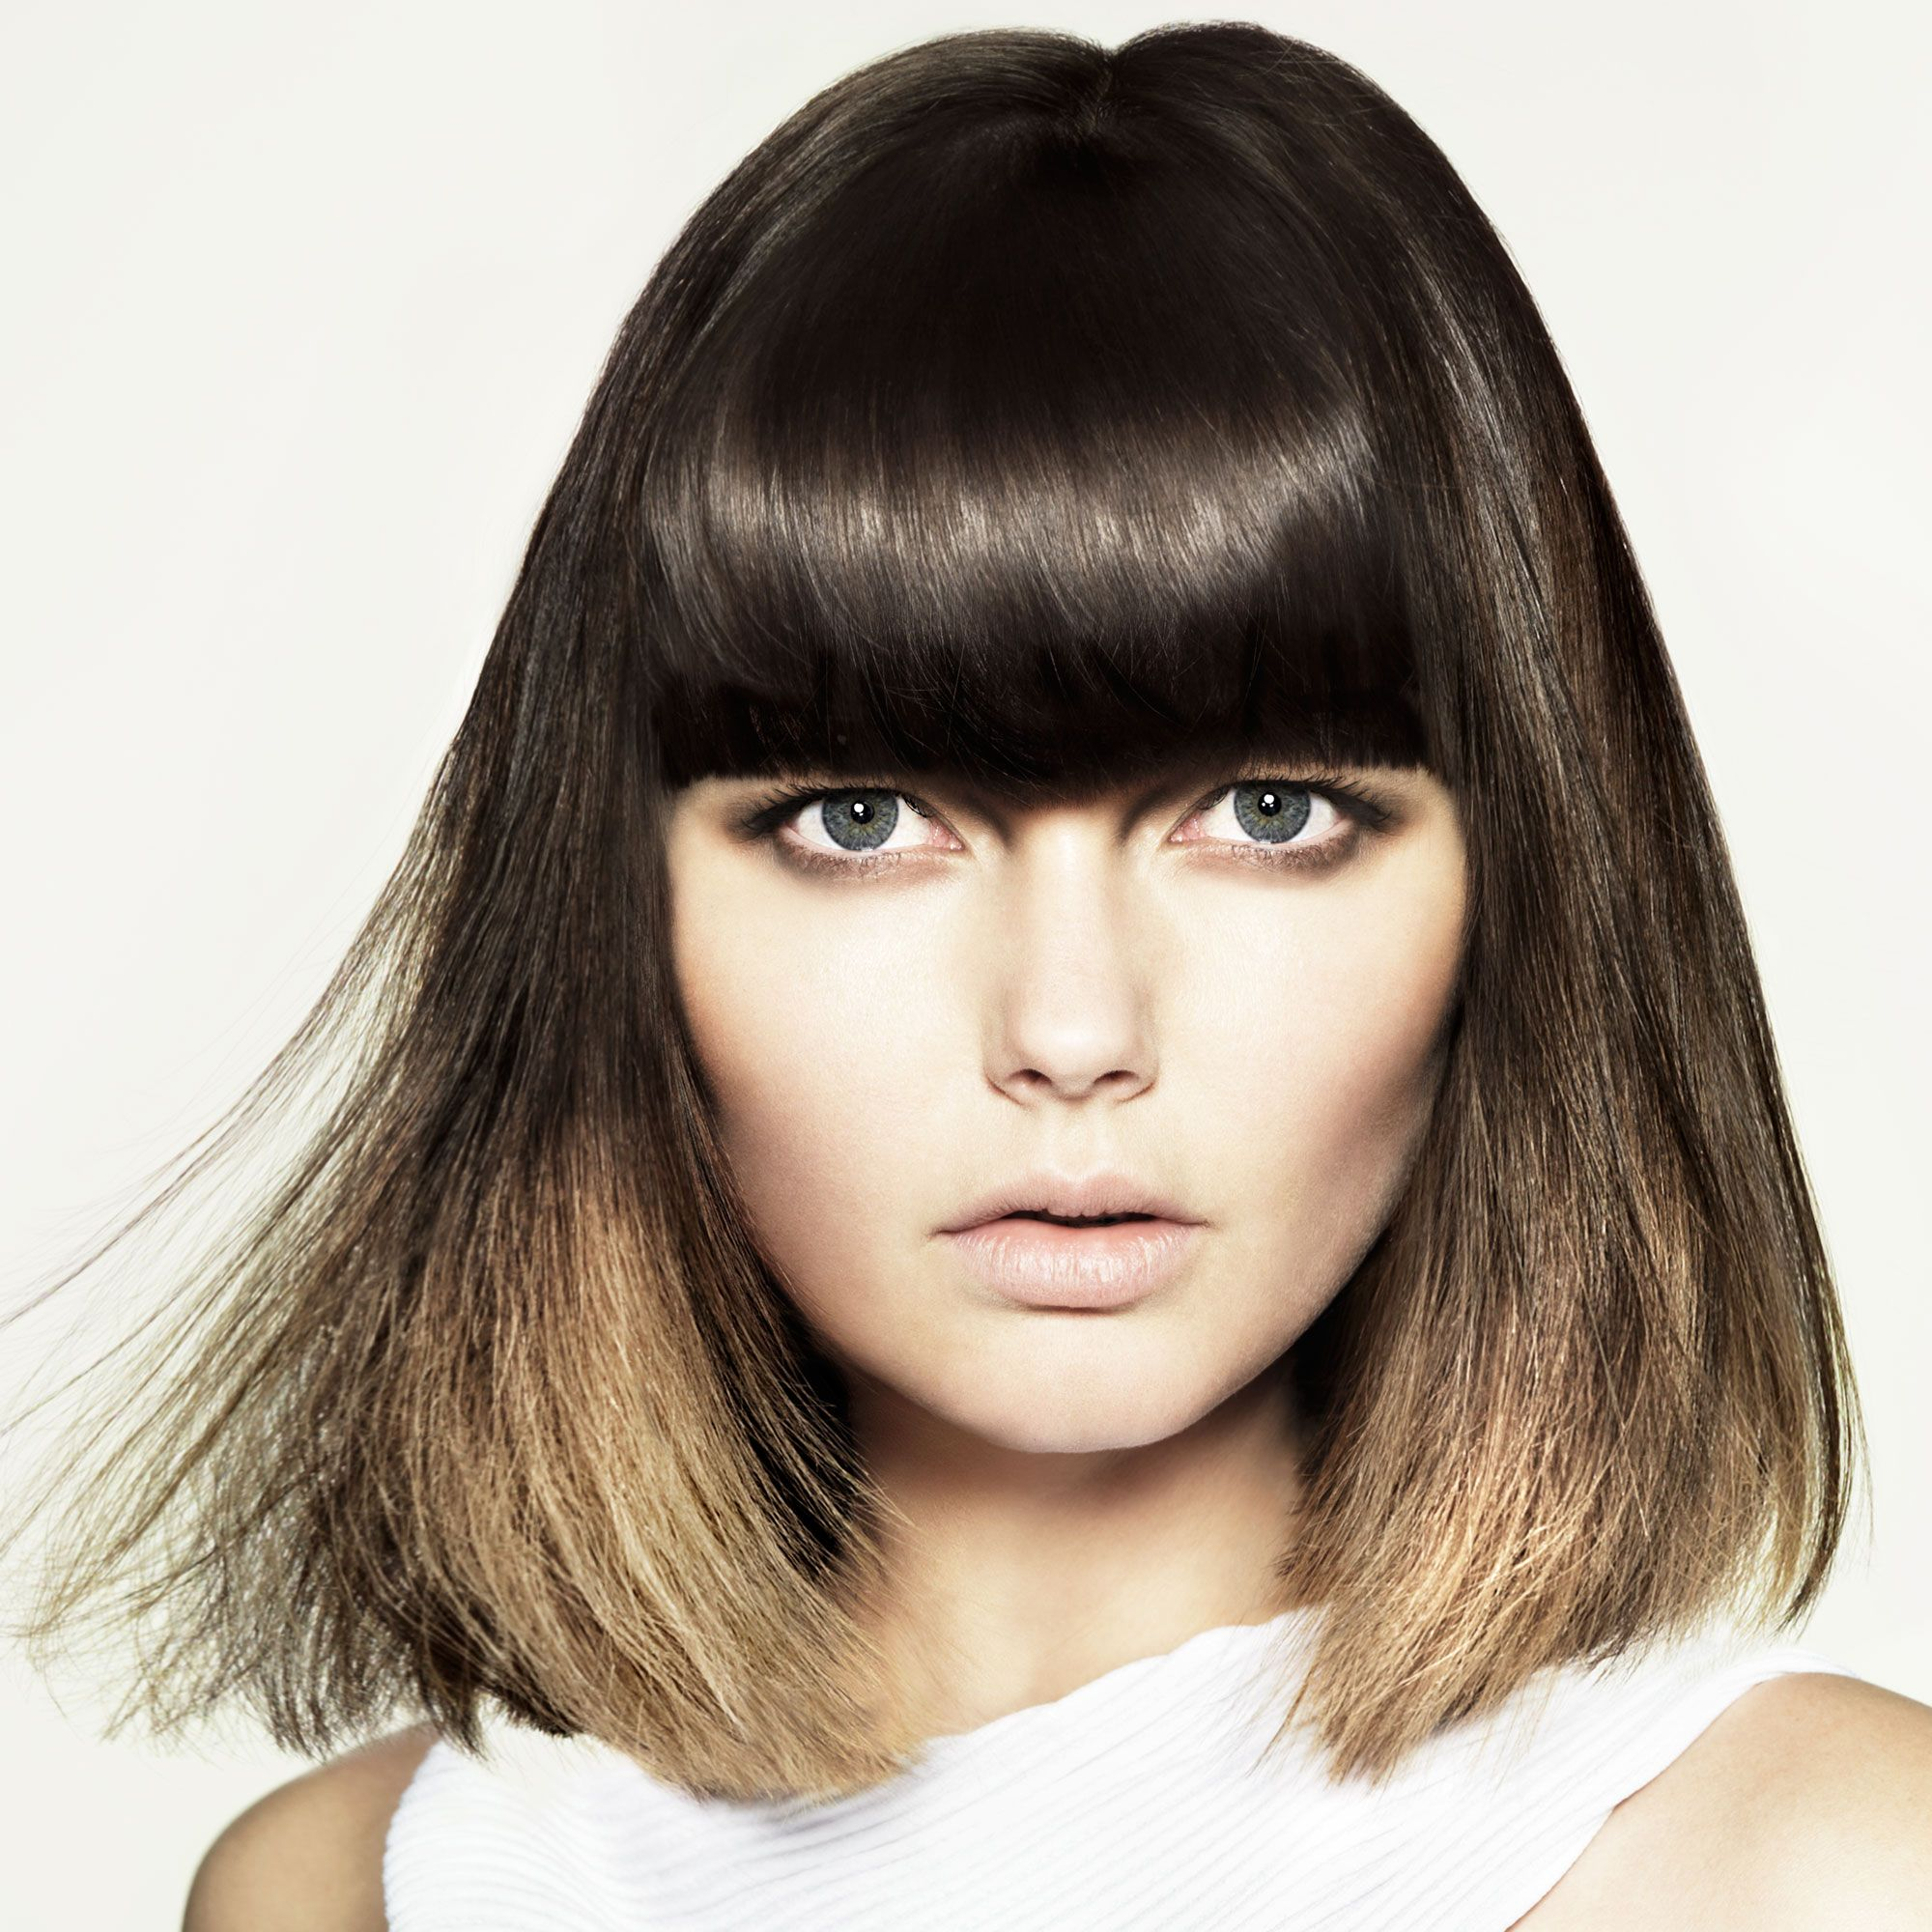 Fringe Hairstyles Hair Pinterest Fringe Hairstyles Thick